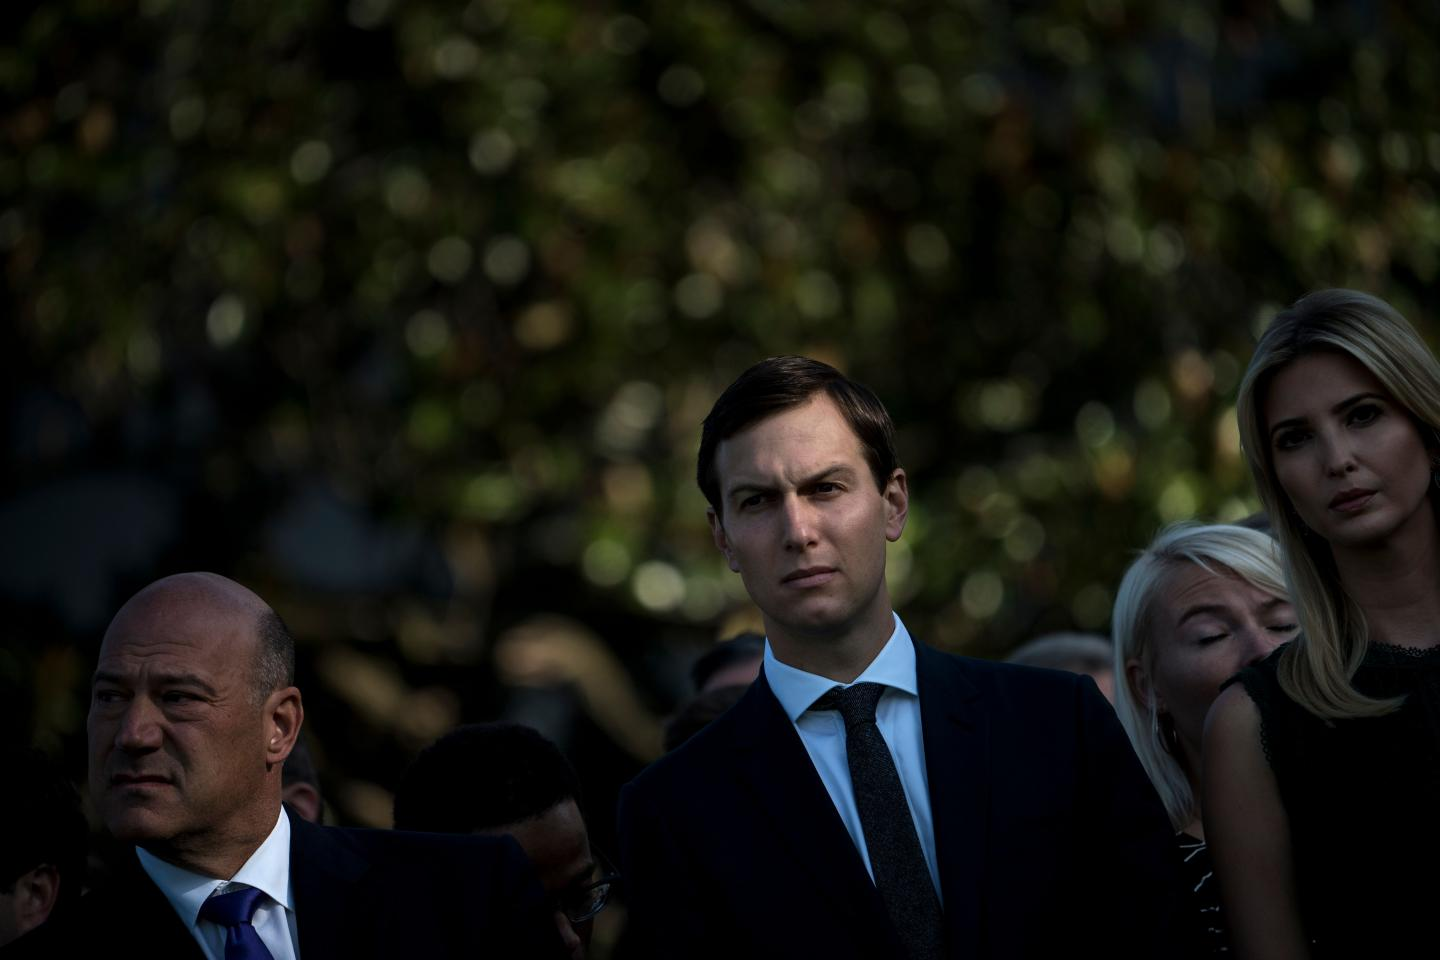 Jared Kushner hid one of his companies on a disclosure form — then profited https://t.co/XzHdBeQuSw https://t.co/dCypUZNYDg